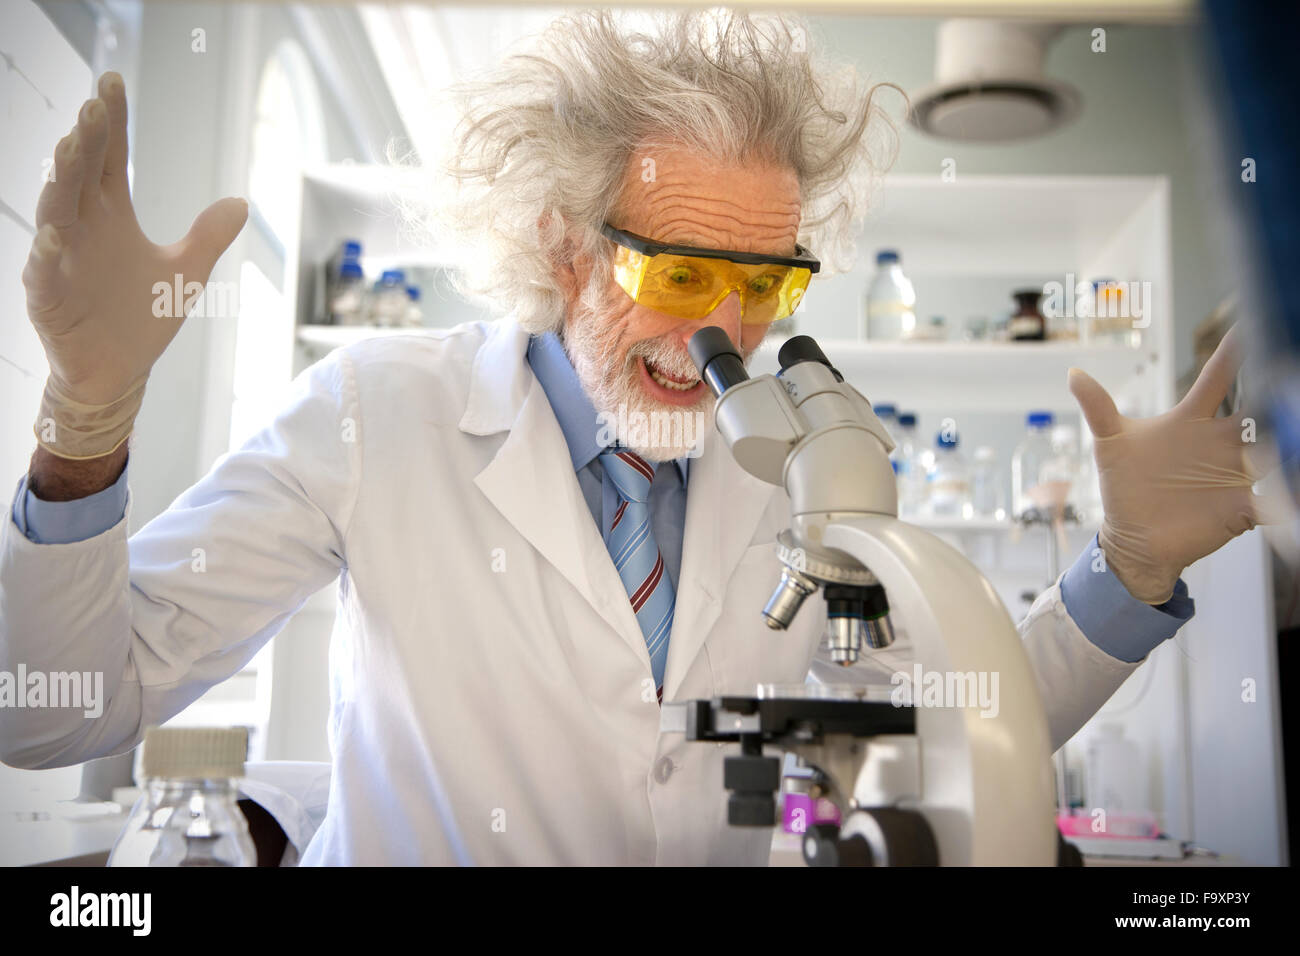 Tousled professor examining samples under microscope, looking surprised - Stock Image